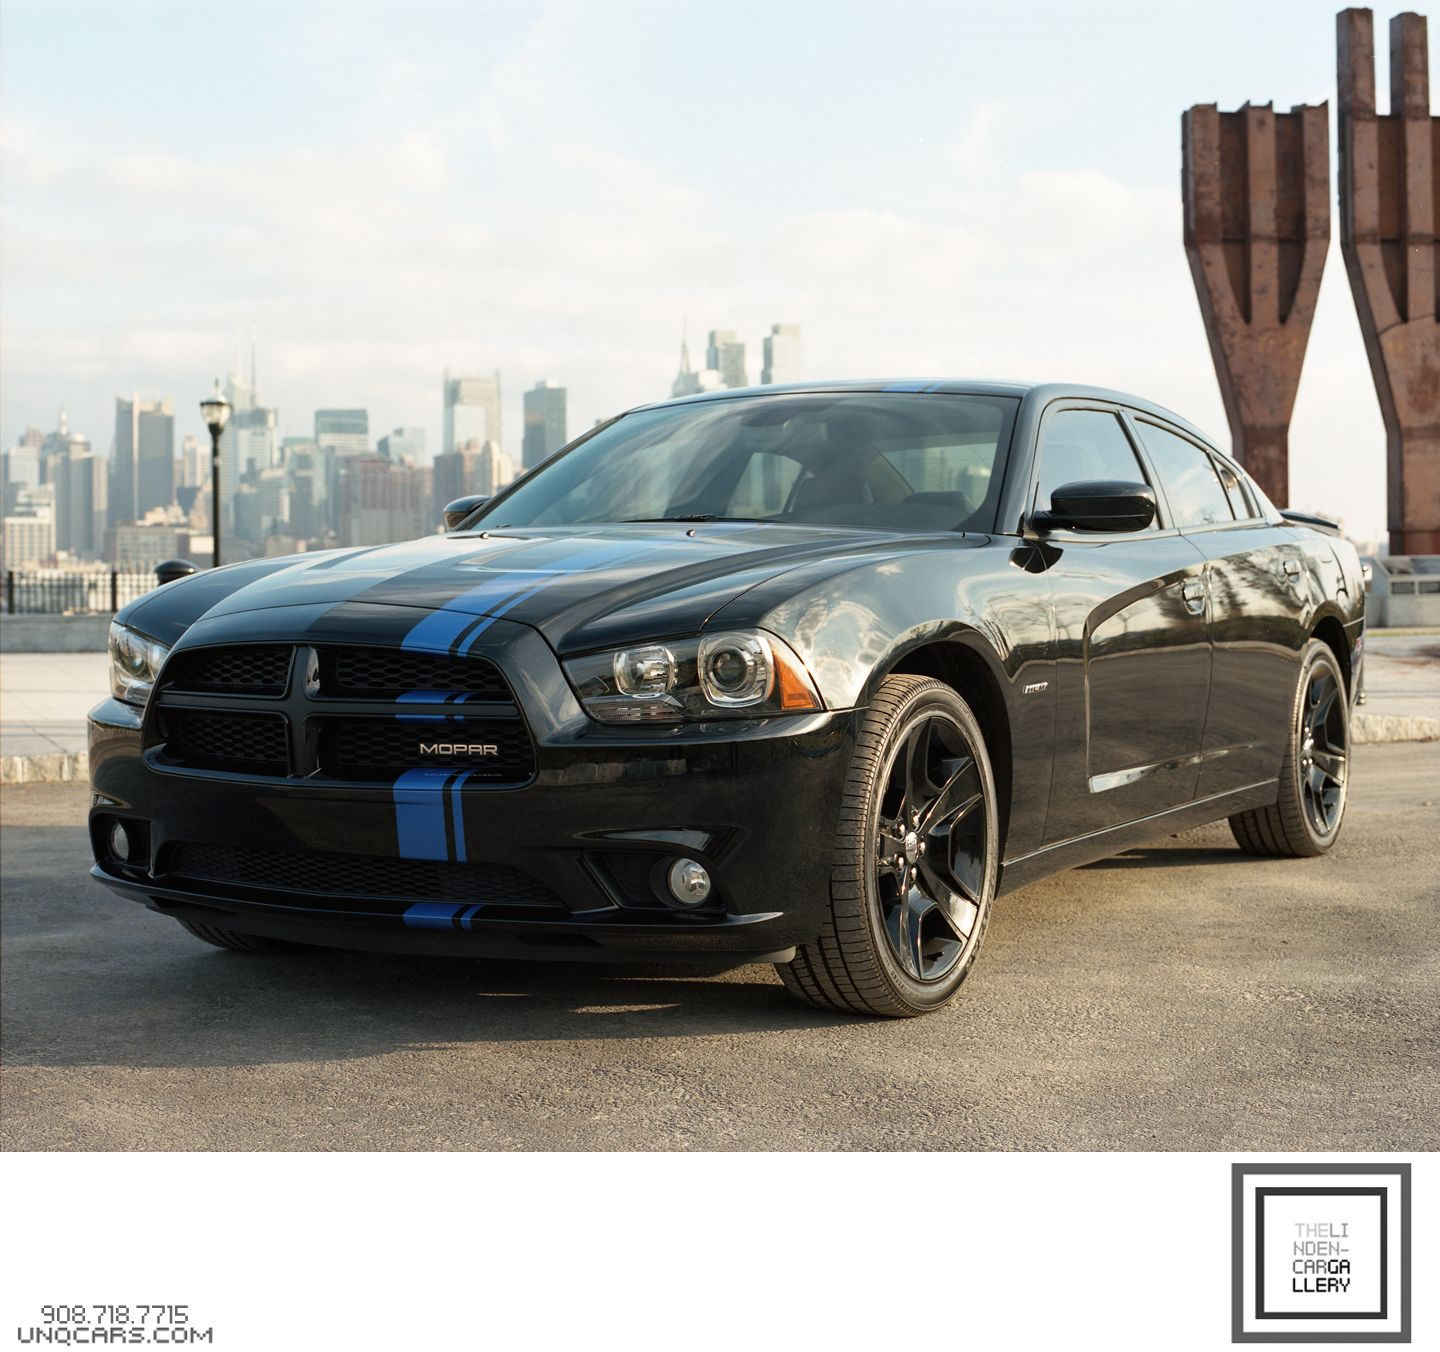 pre owned 2011 dodge charger mopar edition for sale 14 717 miles 39 995 pre owned used. Black Bedroom Furniture Sets. Home Design Ideas